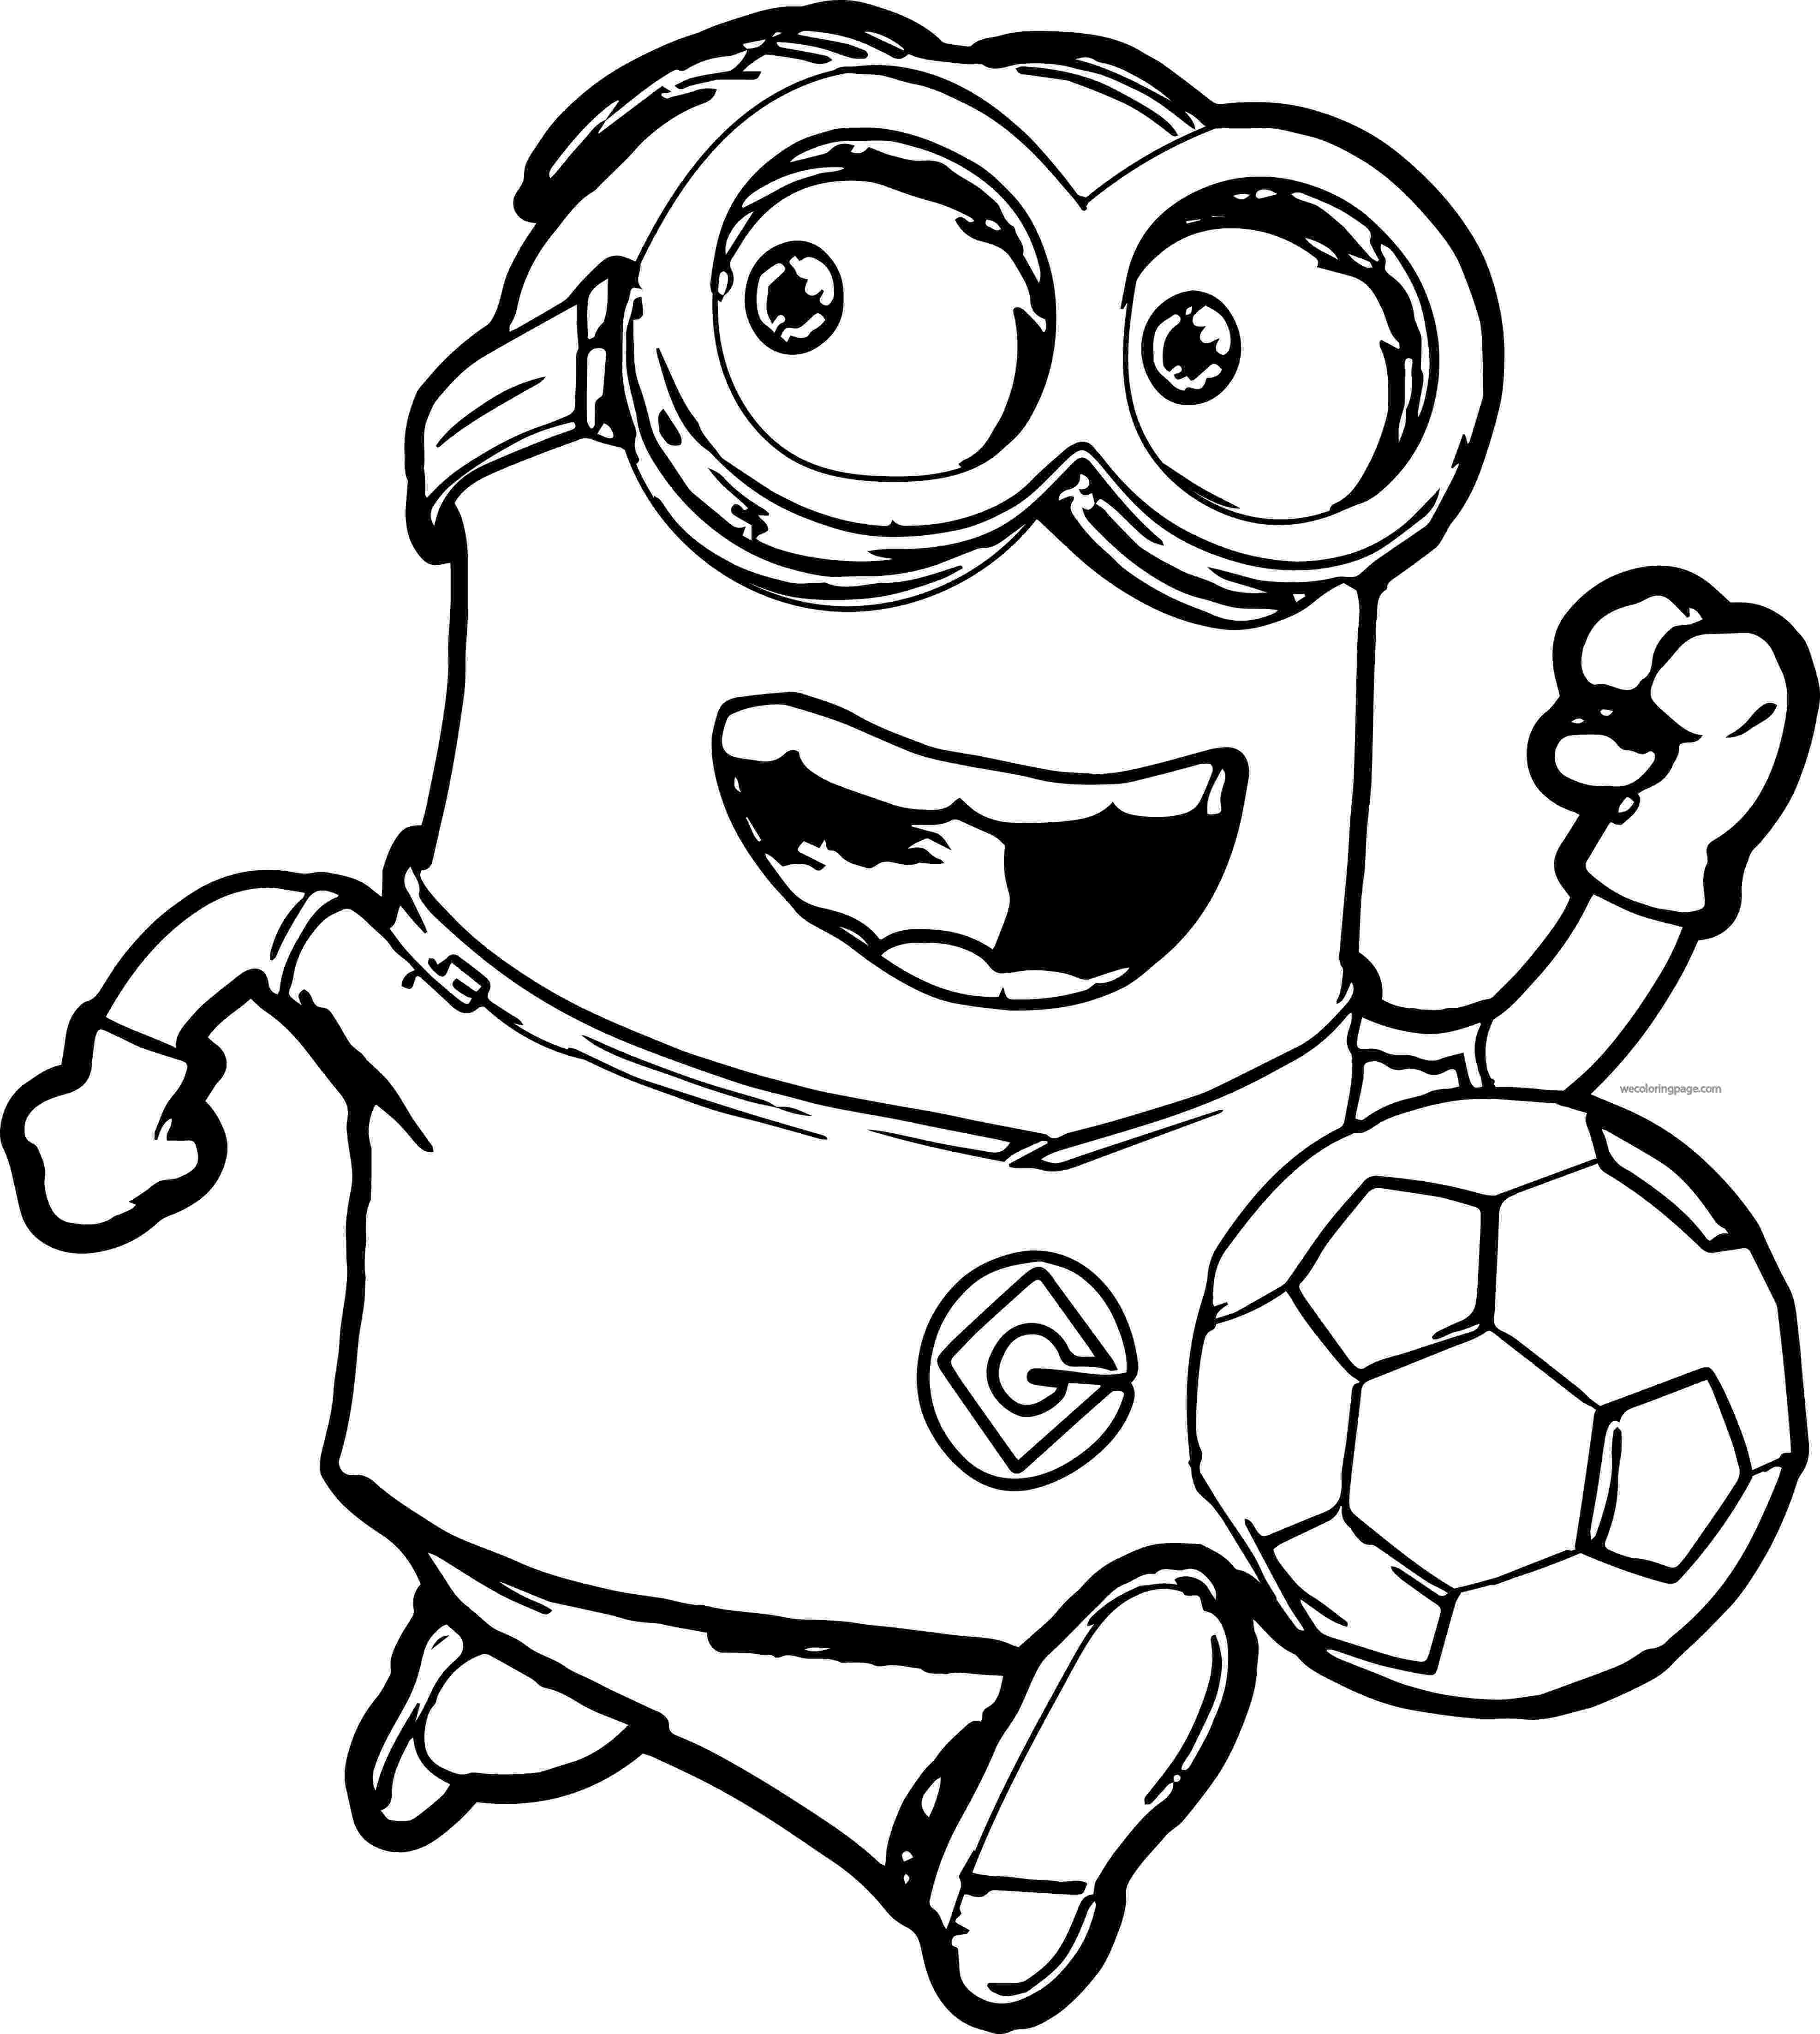 coloring pages online minions minion coloring pages best coloring pages for kids pages online minions coloring